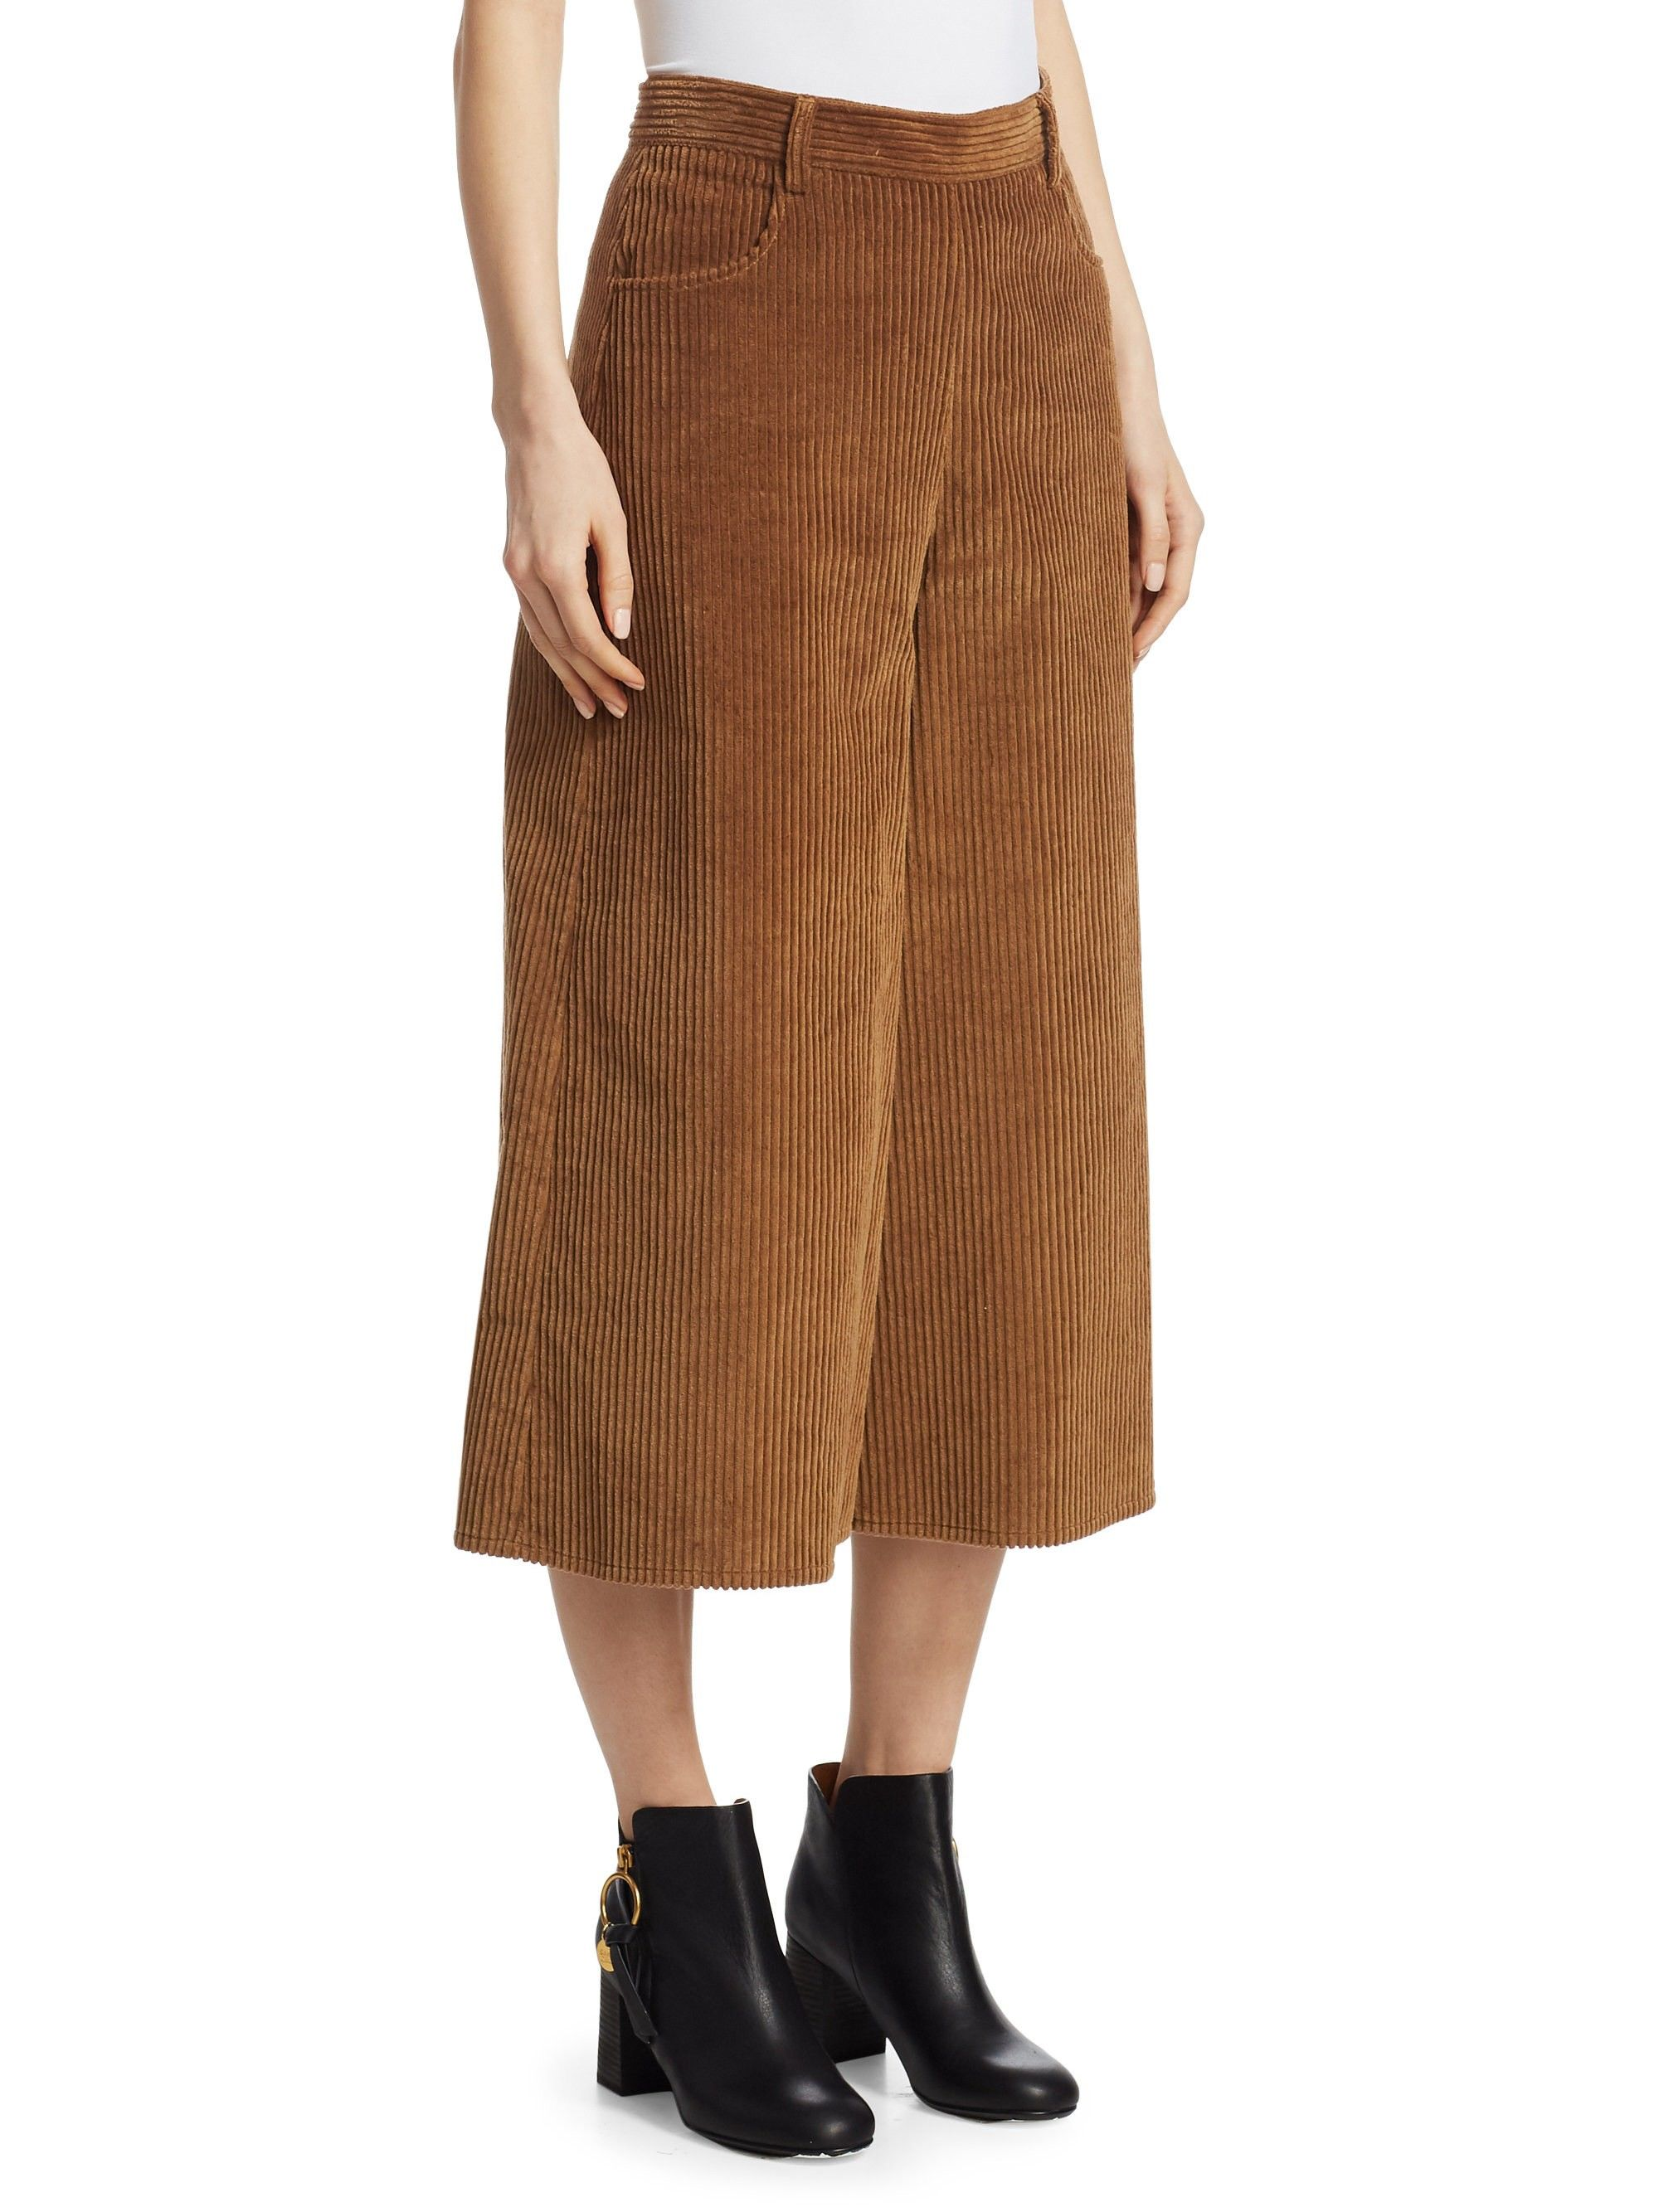 34b55ce91d See By Chloé Corduroy Culottes - Mustard Brown 38 (6)   Outfits I ...